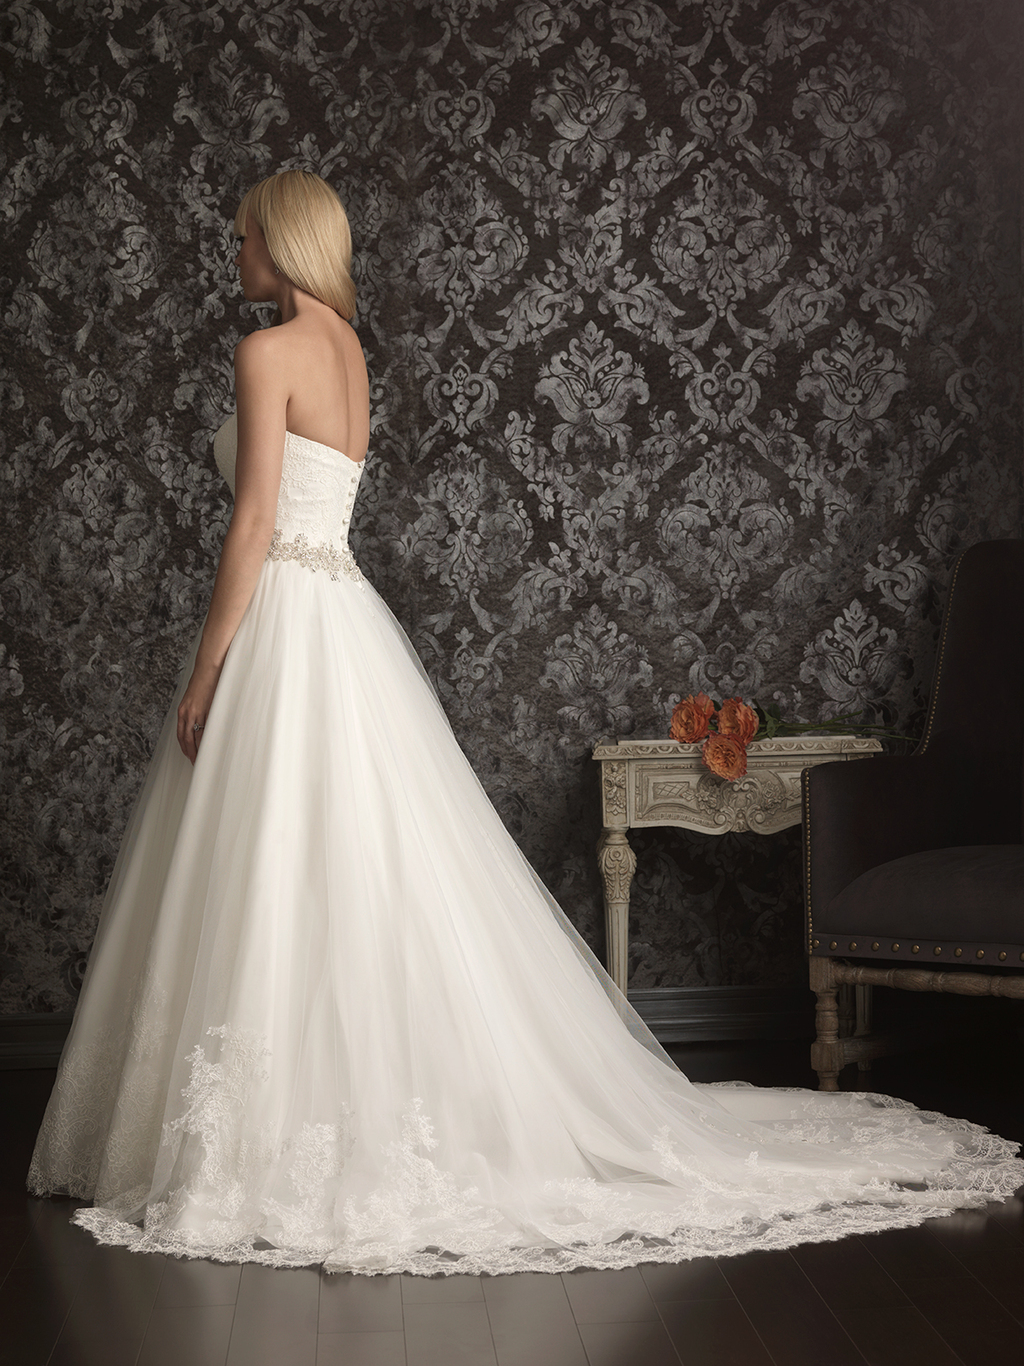 Allure-bridals-wedding-dress-bridal-gown-allure-collection-2013-9014b.full